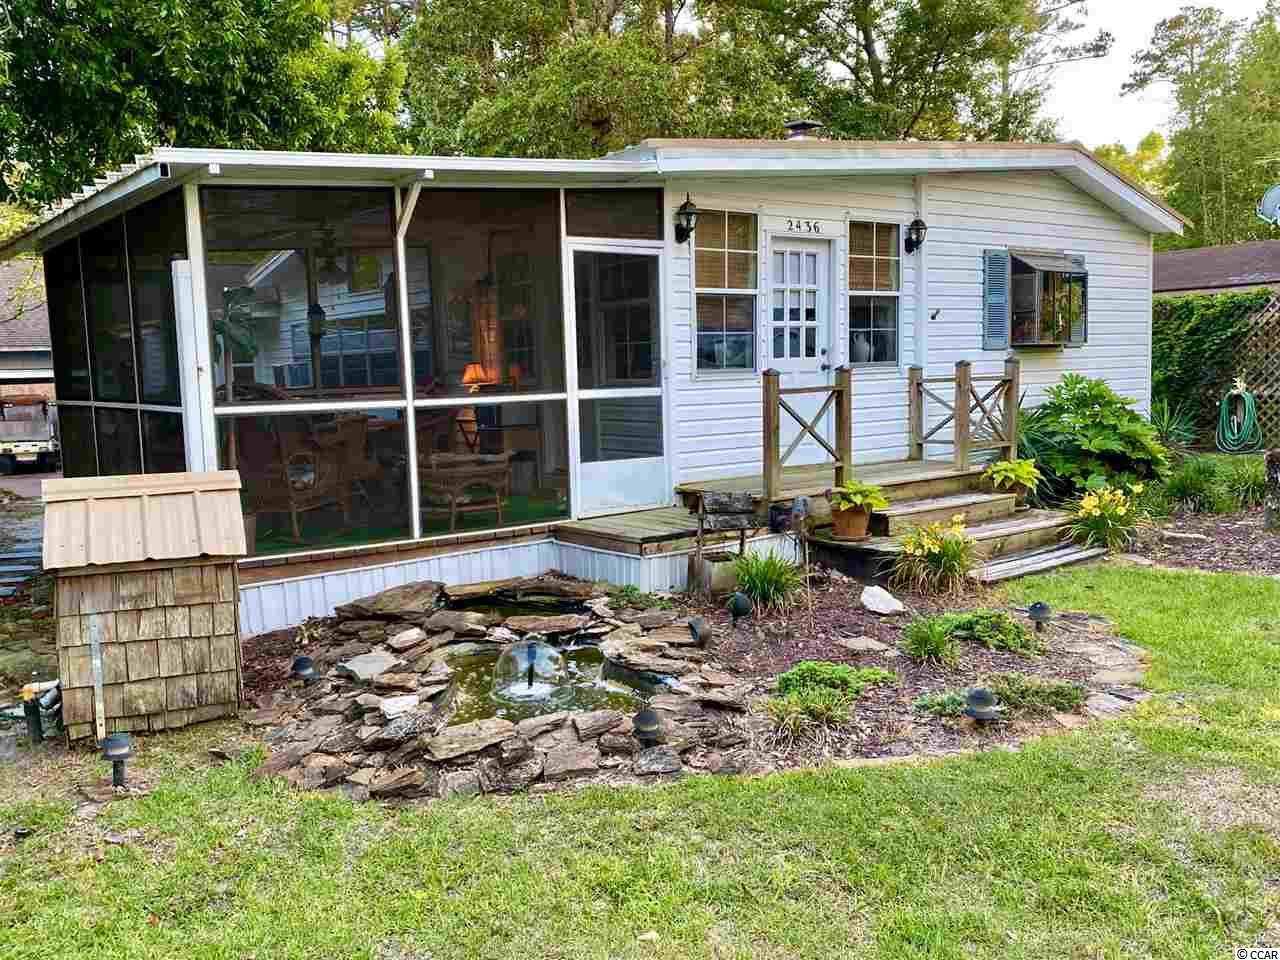 If you are looking for a Awesome Location thats close to the beach and boat landing, you have found it!  This 2 bedroom 2 bath Beach Bungalow has 3 kitchens and 3 different living spaces. You could live in one side and rent the other side out.  Nice lot with large enclosed storage shed and covered shed to store your bikes or Jet Skis.  Less than 1/4 mile to the boat landing.  No HOA and Plenty of room to park your Boat or RV. You will love relaxing on your screened porch while enjoying the cool ocean breeze!